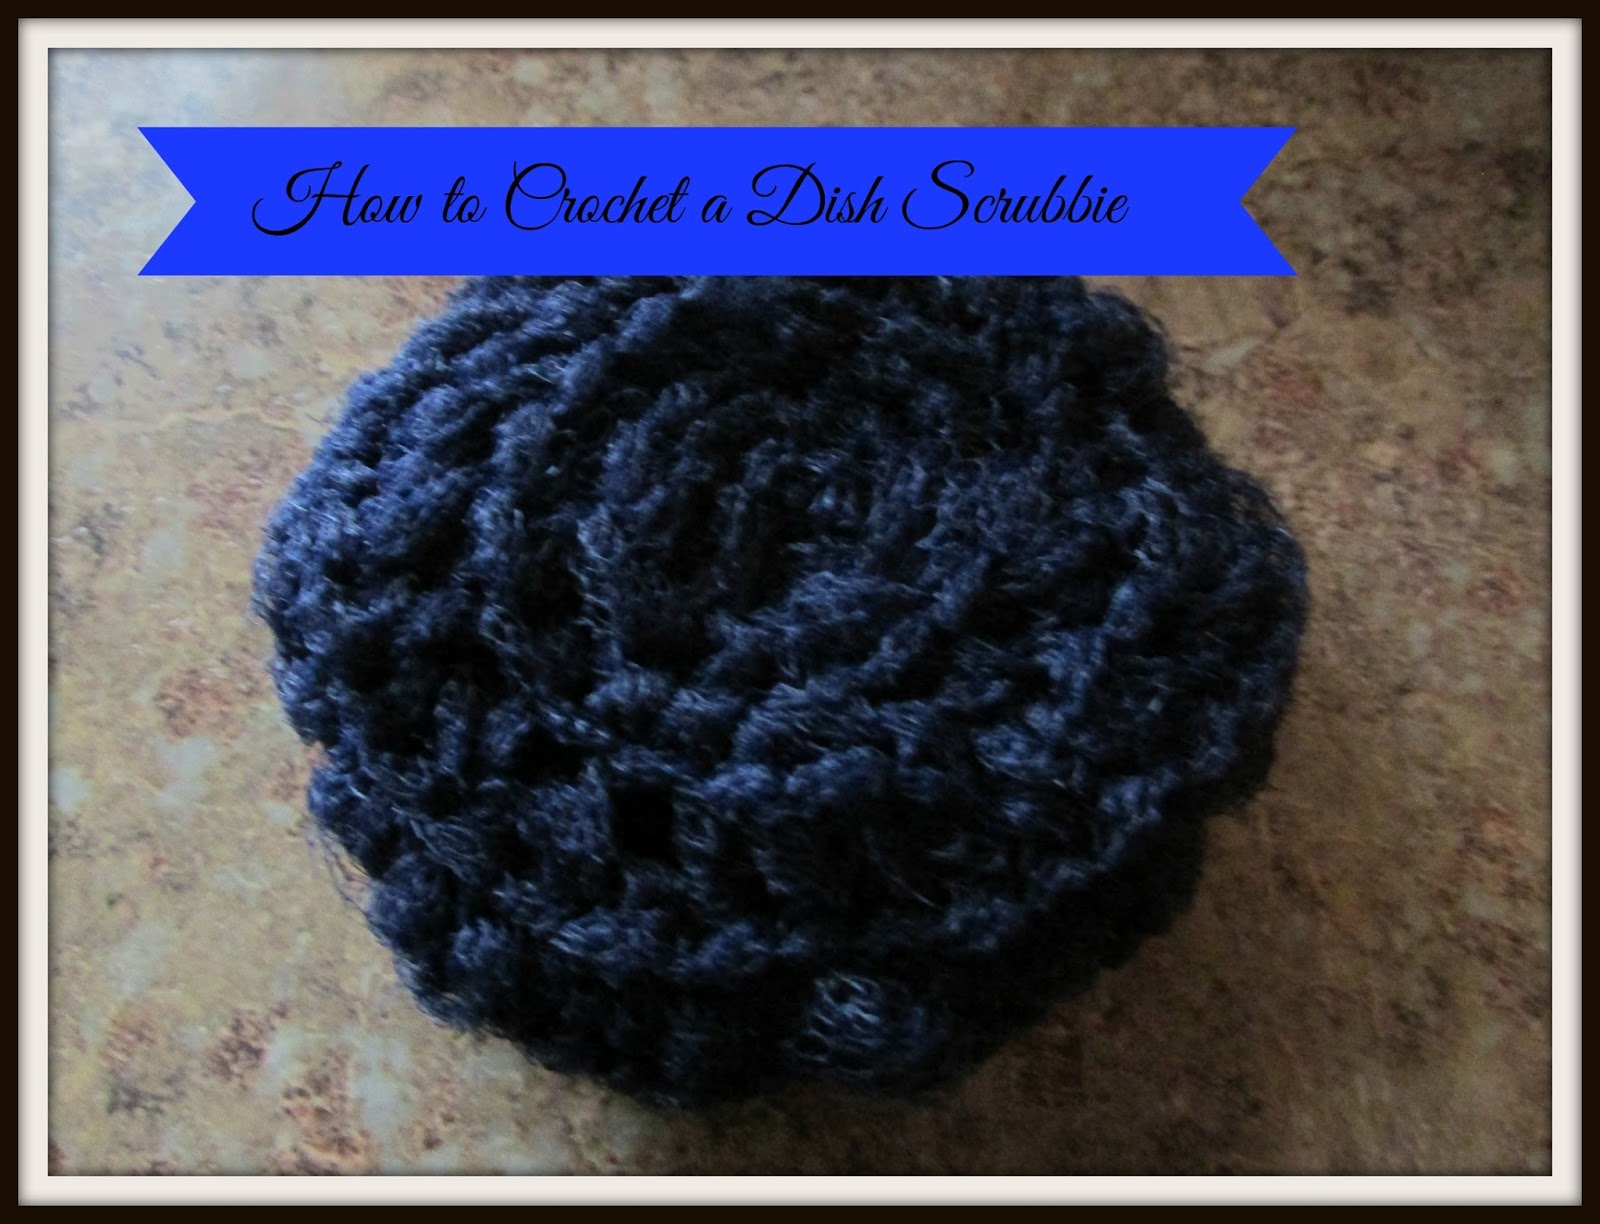 Vickies Kitchen And Garden How To Crochet A Dish Scrubbie